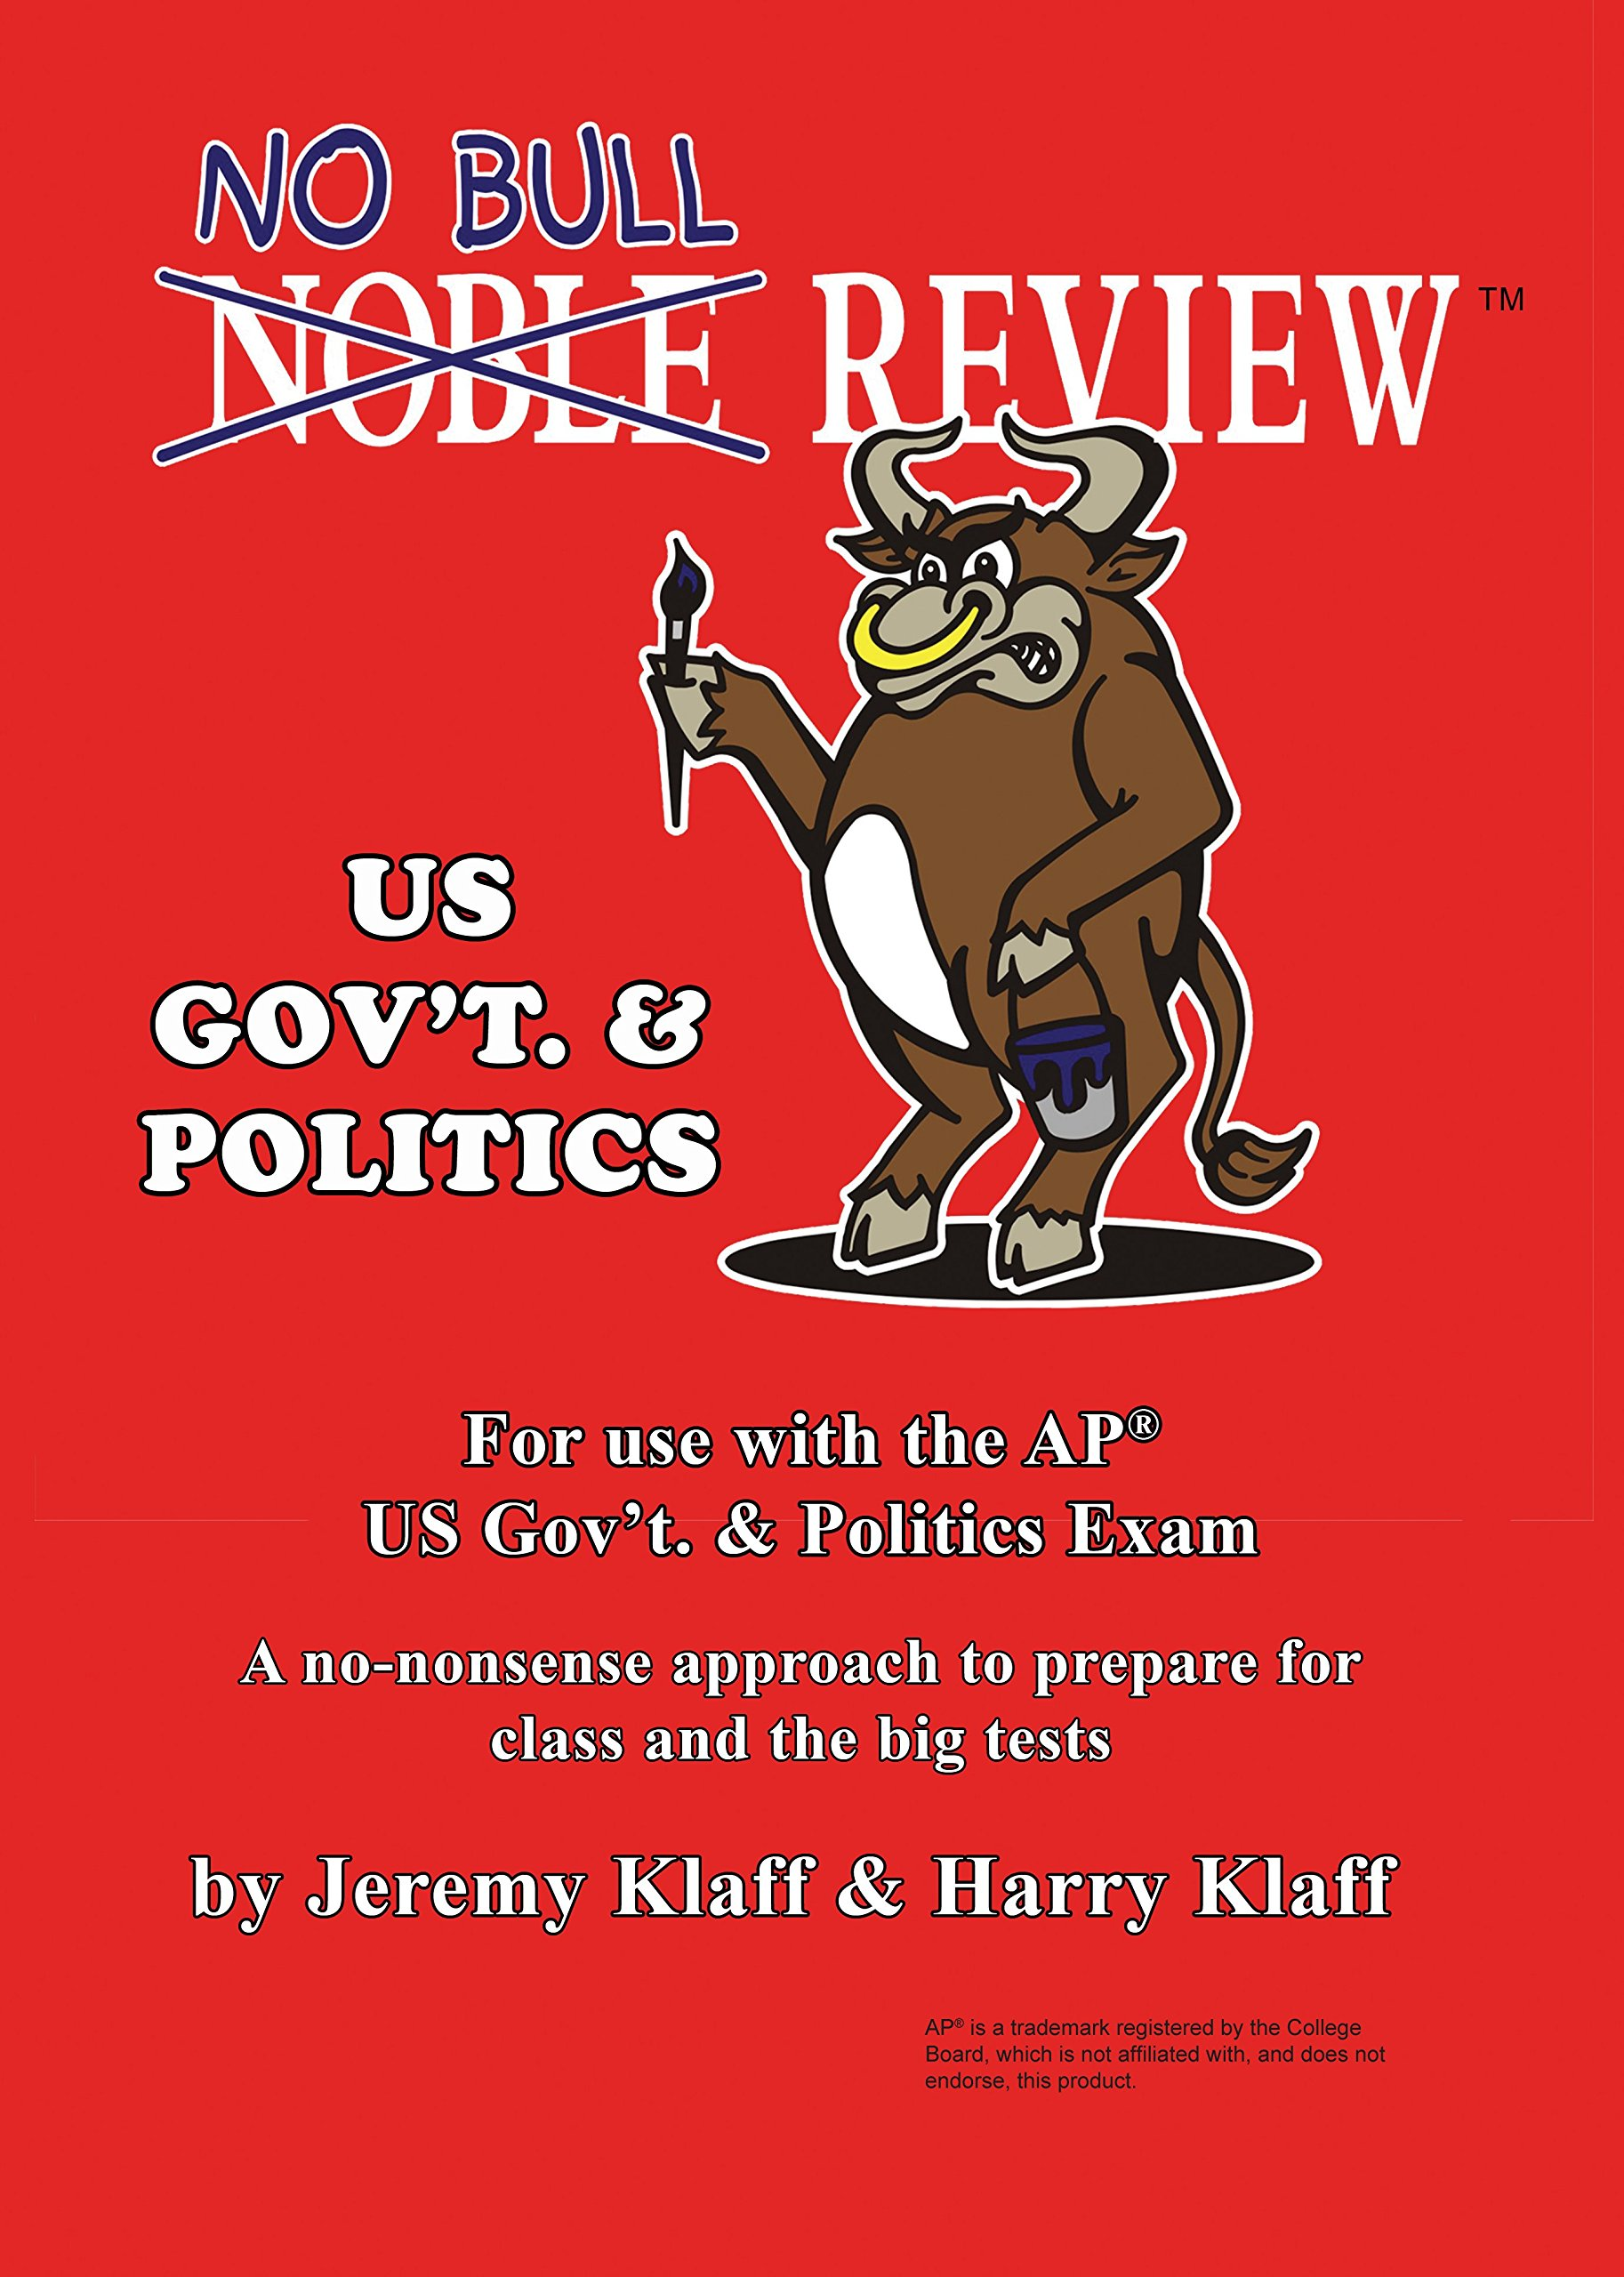 No Bull Review (2018 Edition) - US Government and Politics: For Use with the AP US Government and Politics Exam